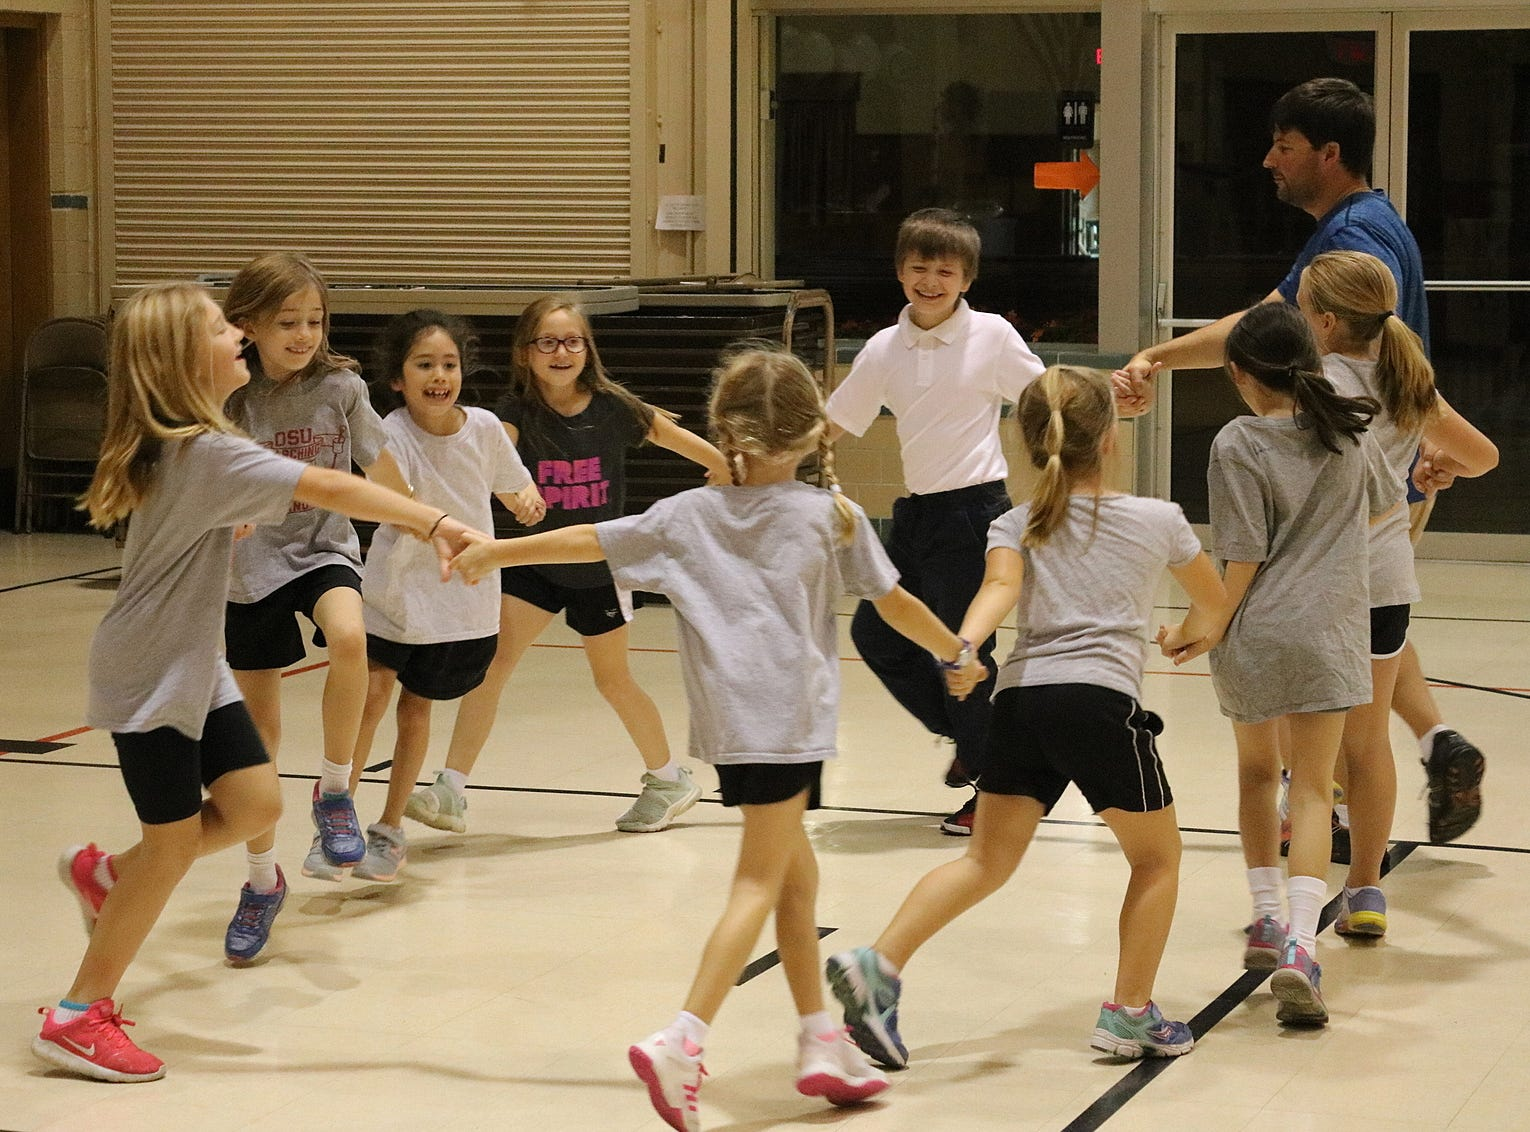 On Wednesday, students at Immaculate Conception School began to learn square dancing in preparation for the Boots and Buckles Pig Roast and Square Dance event later this month.